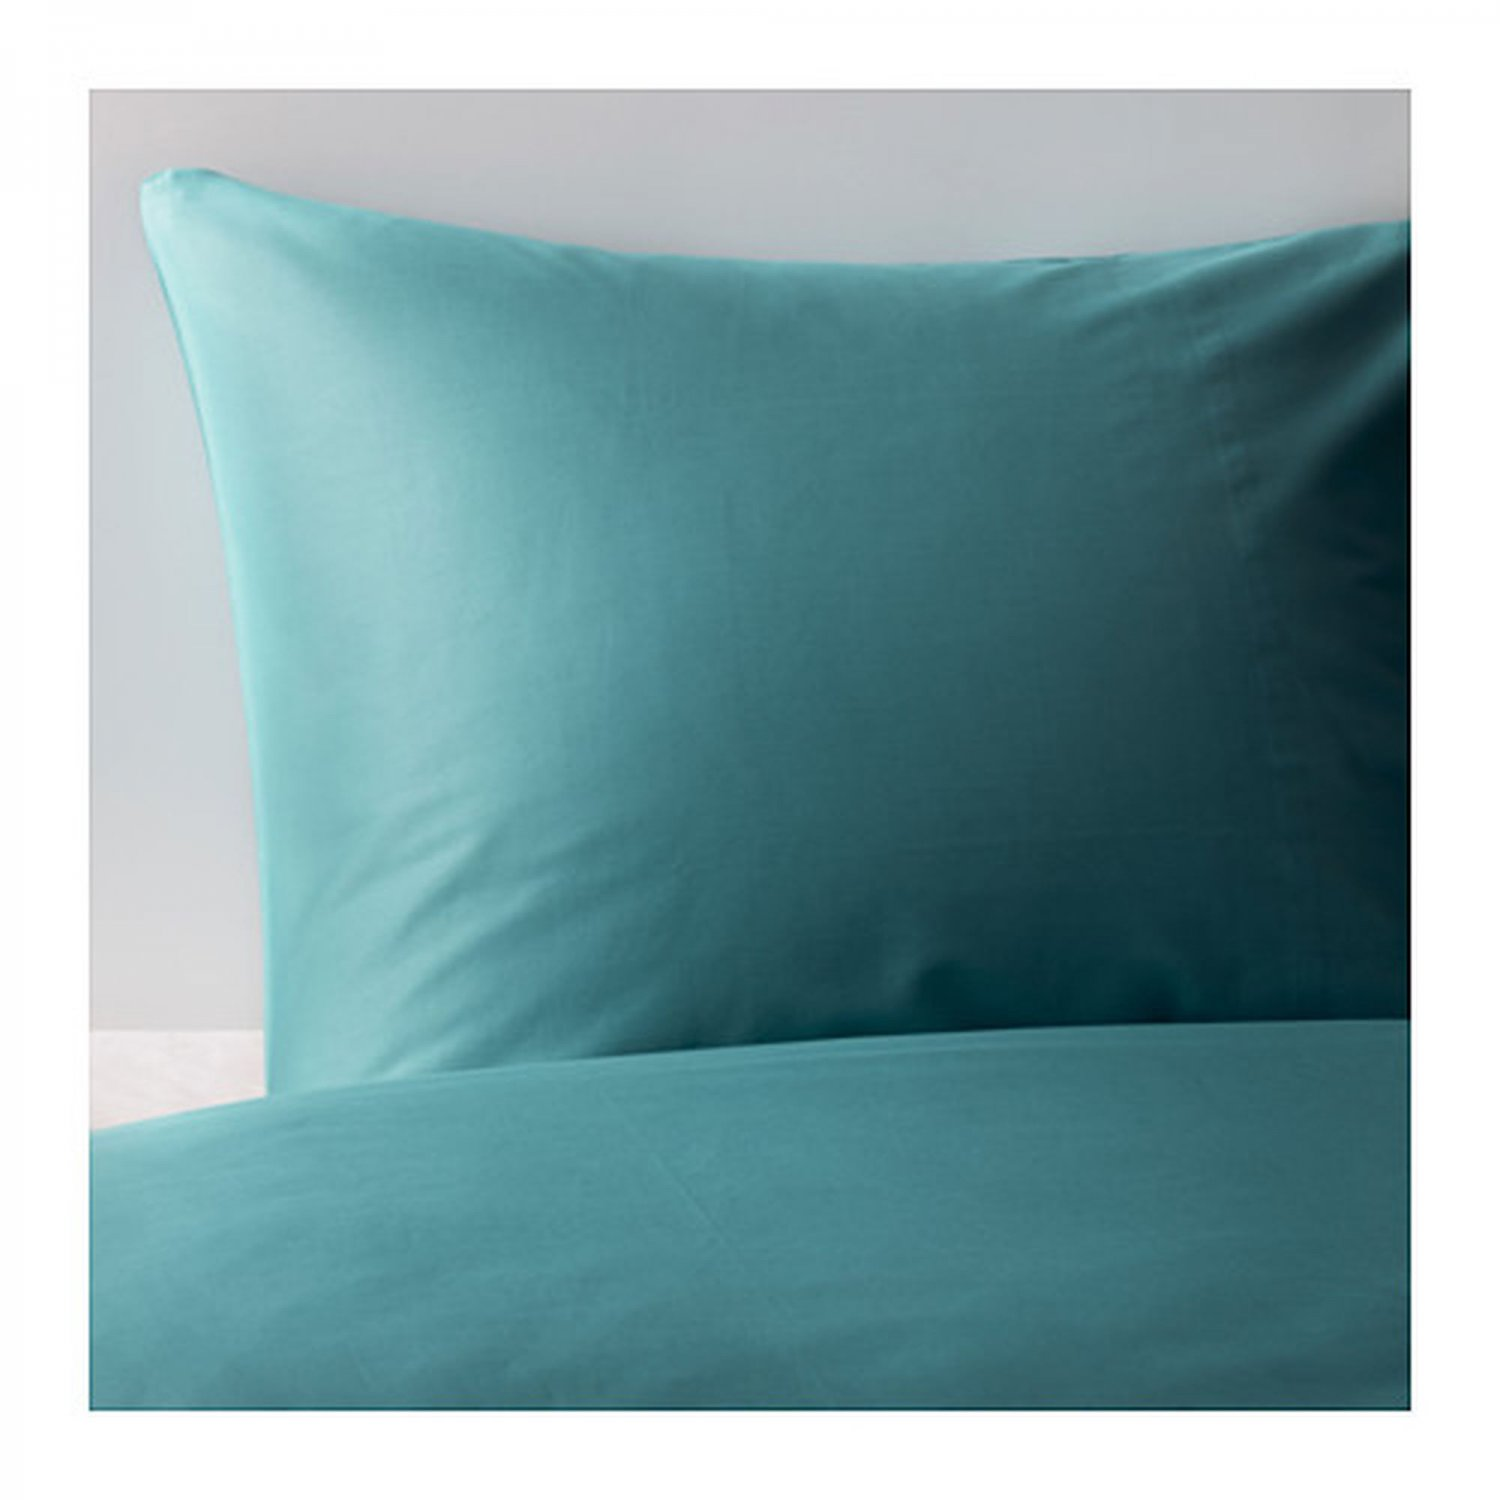 Ikea Gaspa King Duvet Cover And Pillowcases Set Turquoise